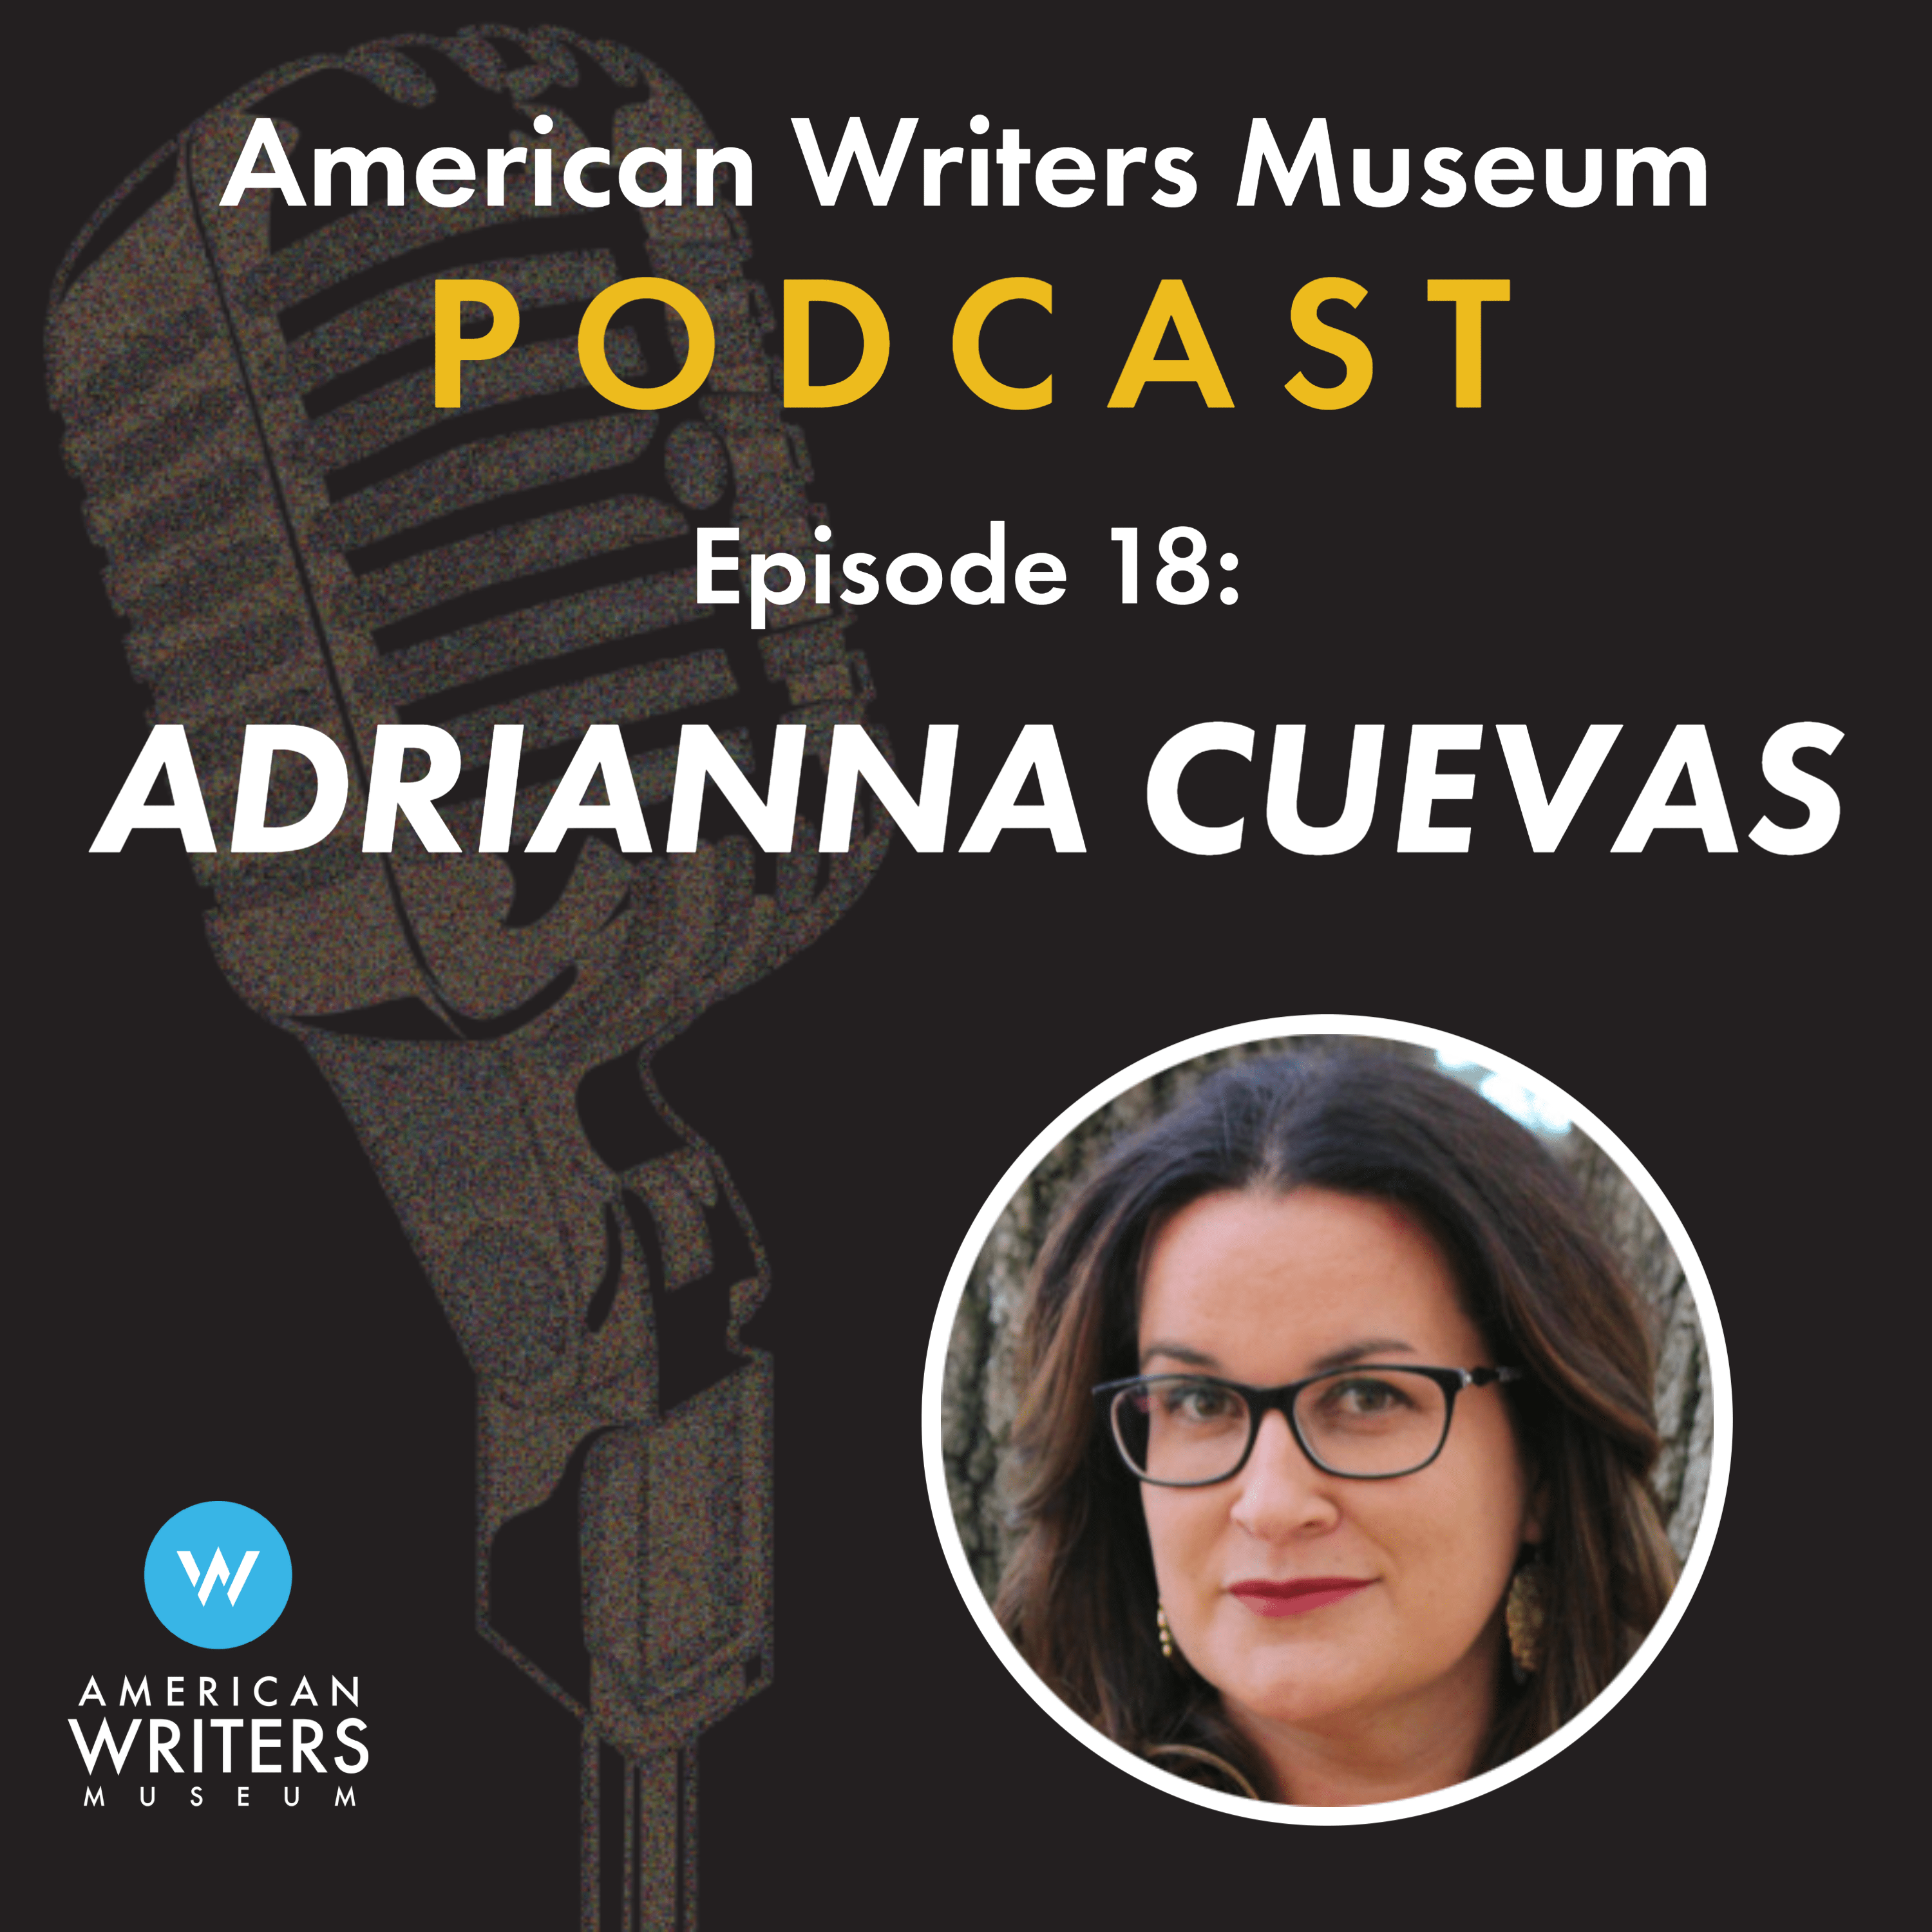 American Writers Museum podcast episode 18 with Adrianna Cuevas